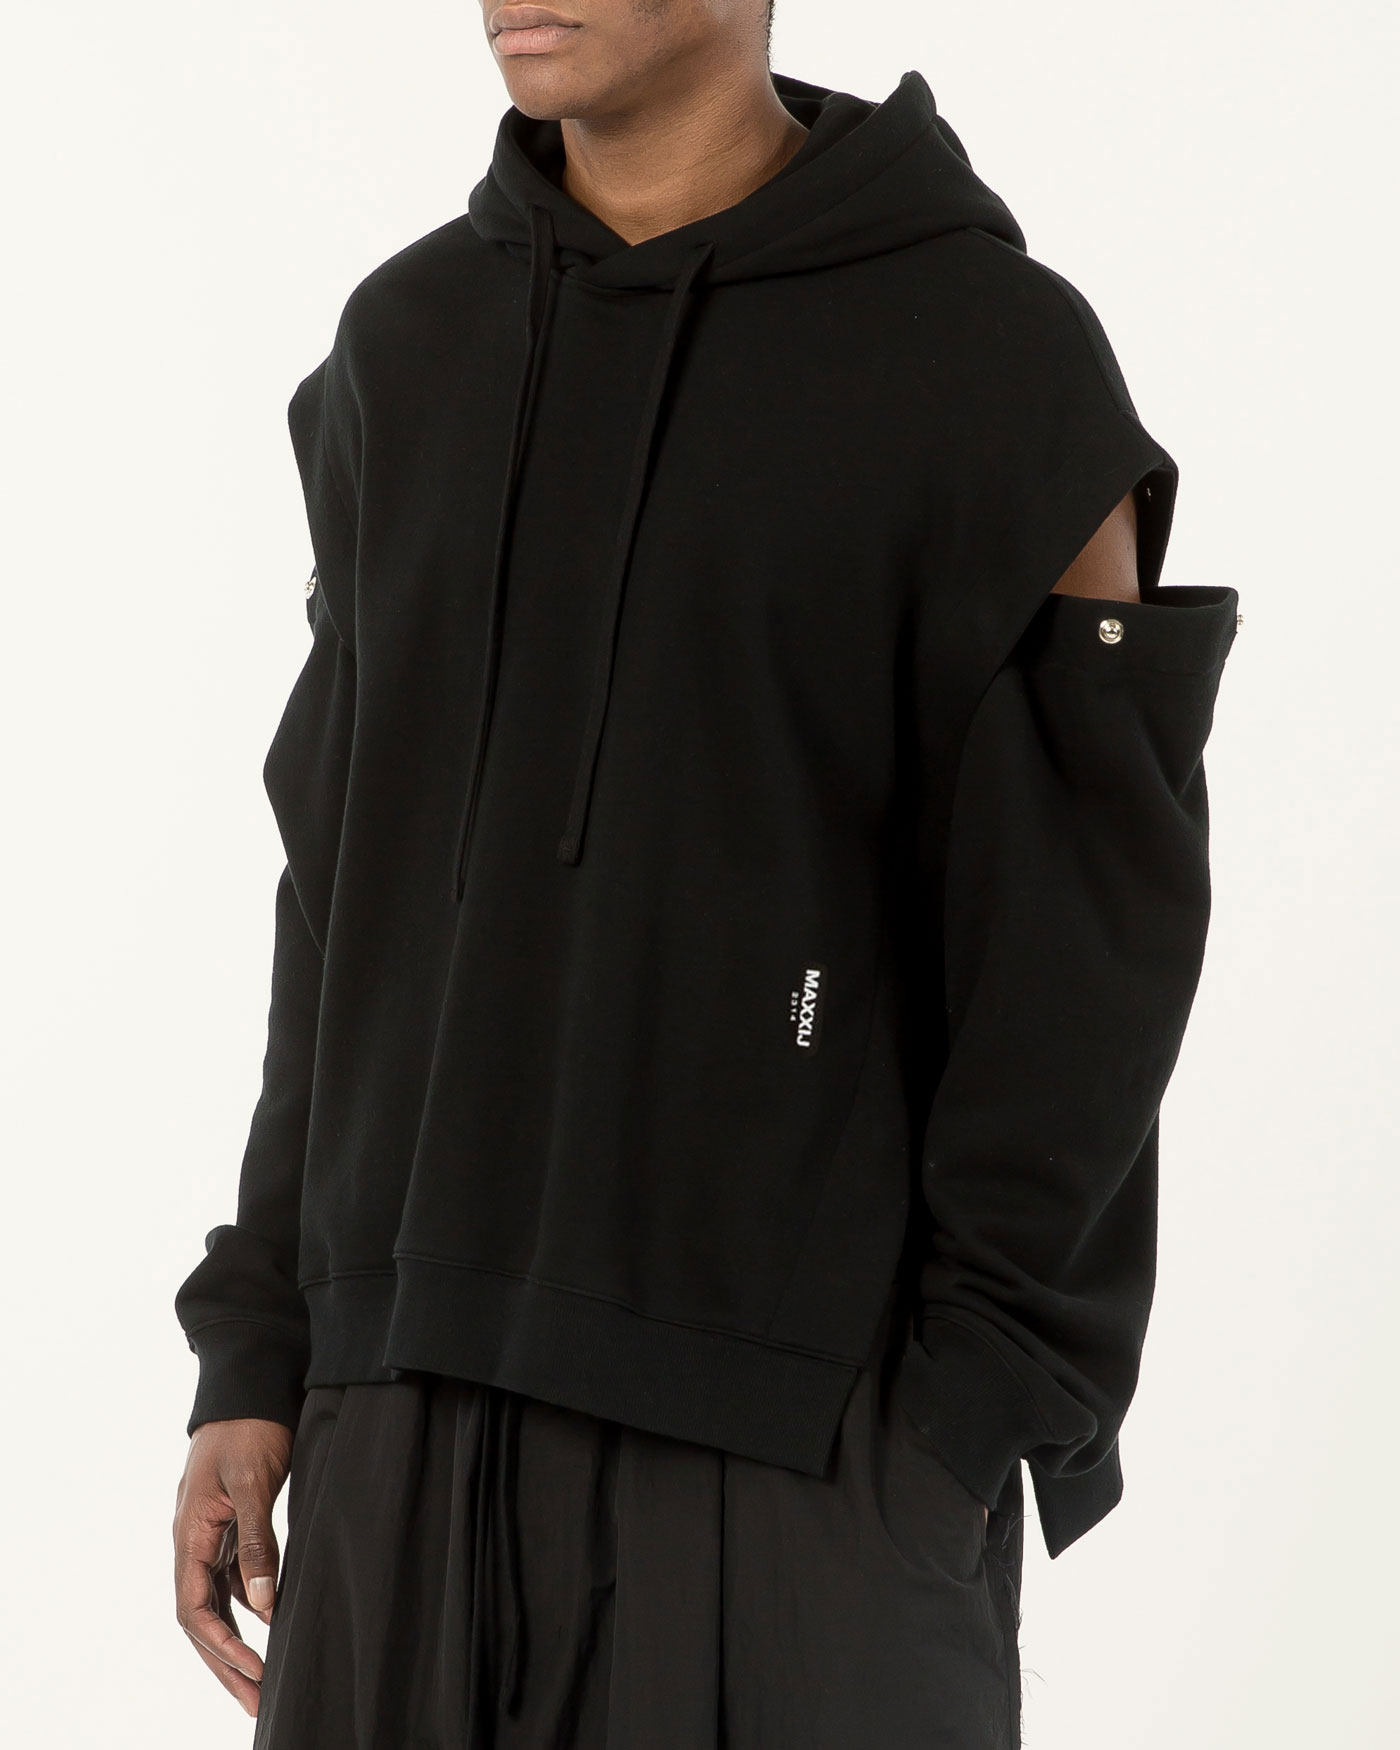 Detachable Sleeve Hoodie Sweatshirt Black